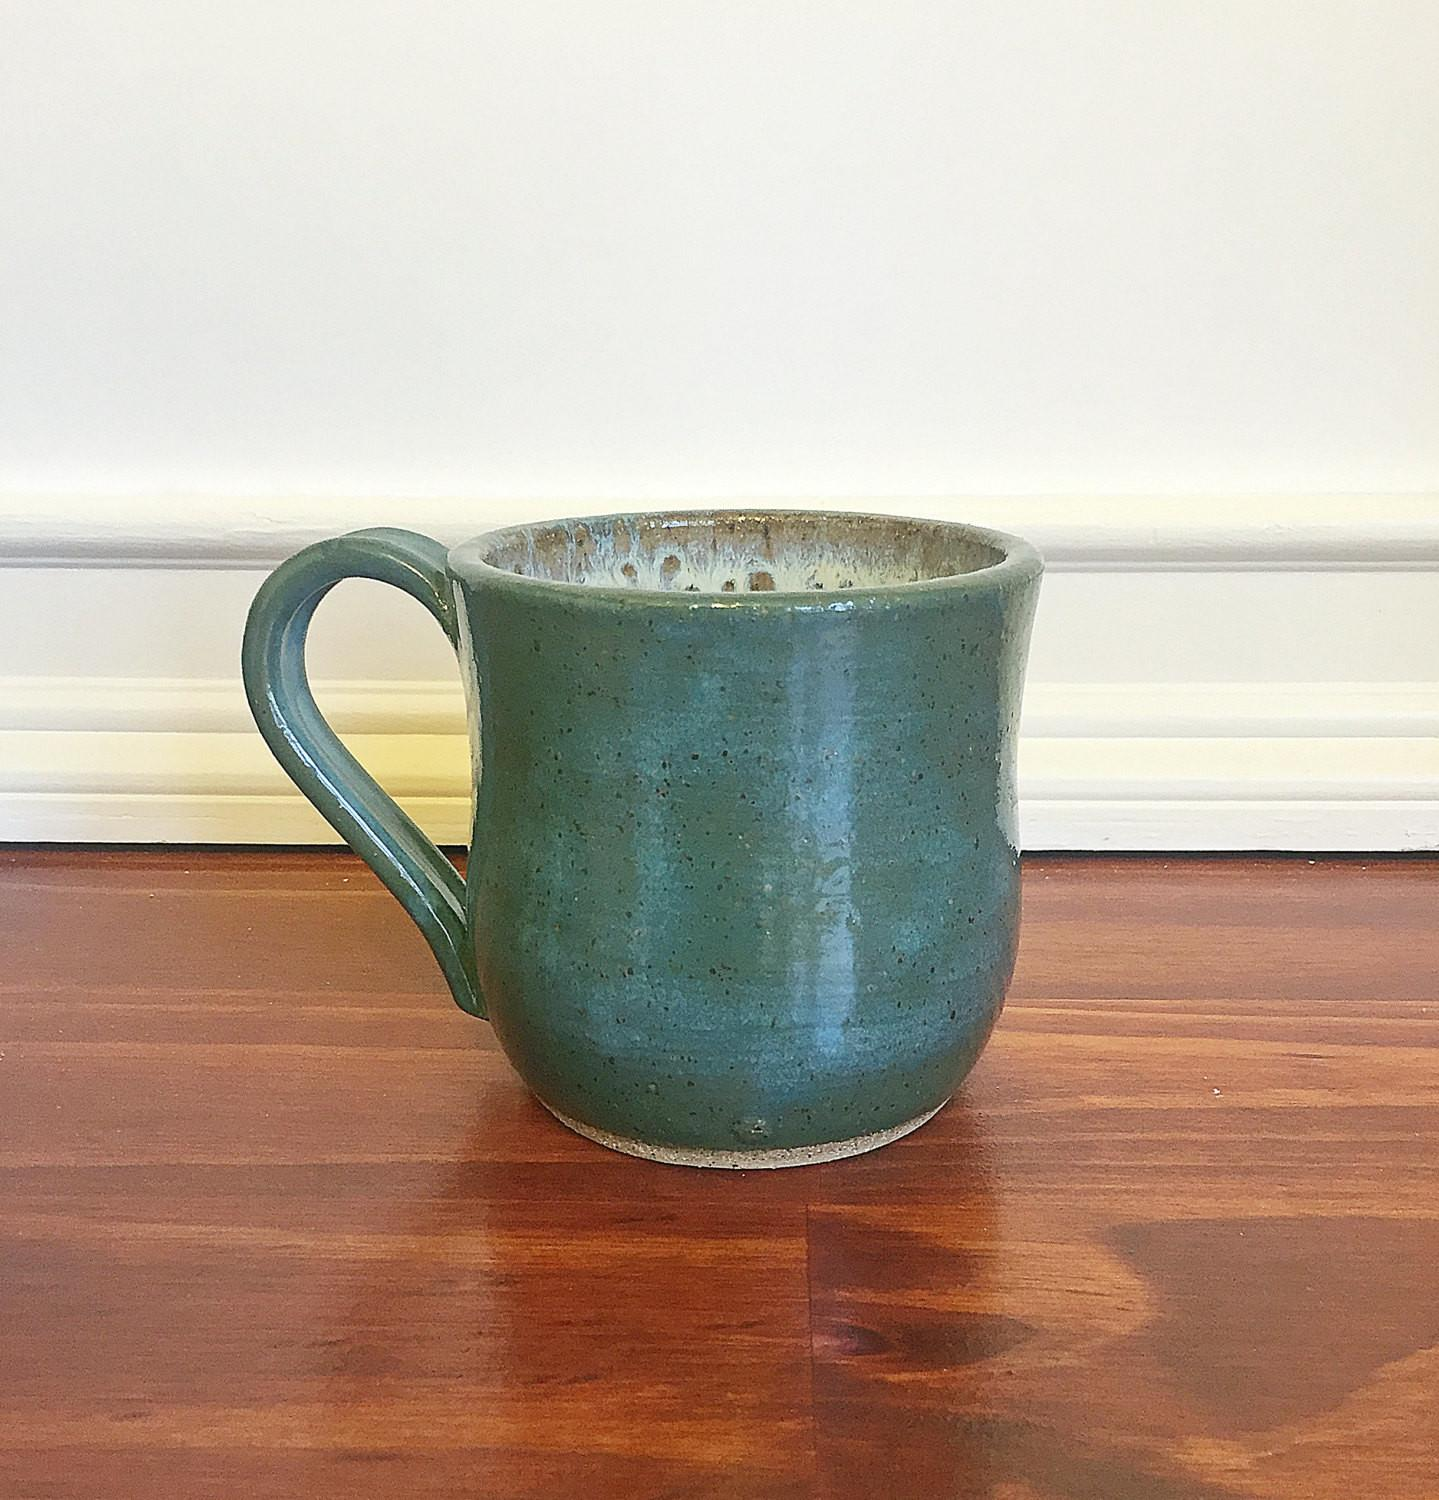 Ceramic Coffee Mug Handmade Pottery Green Ready